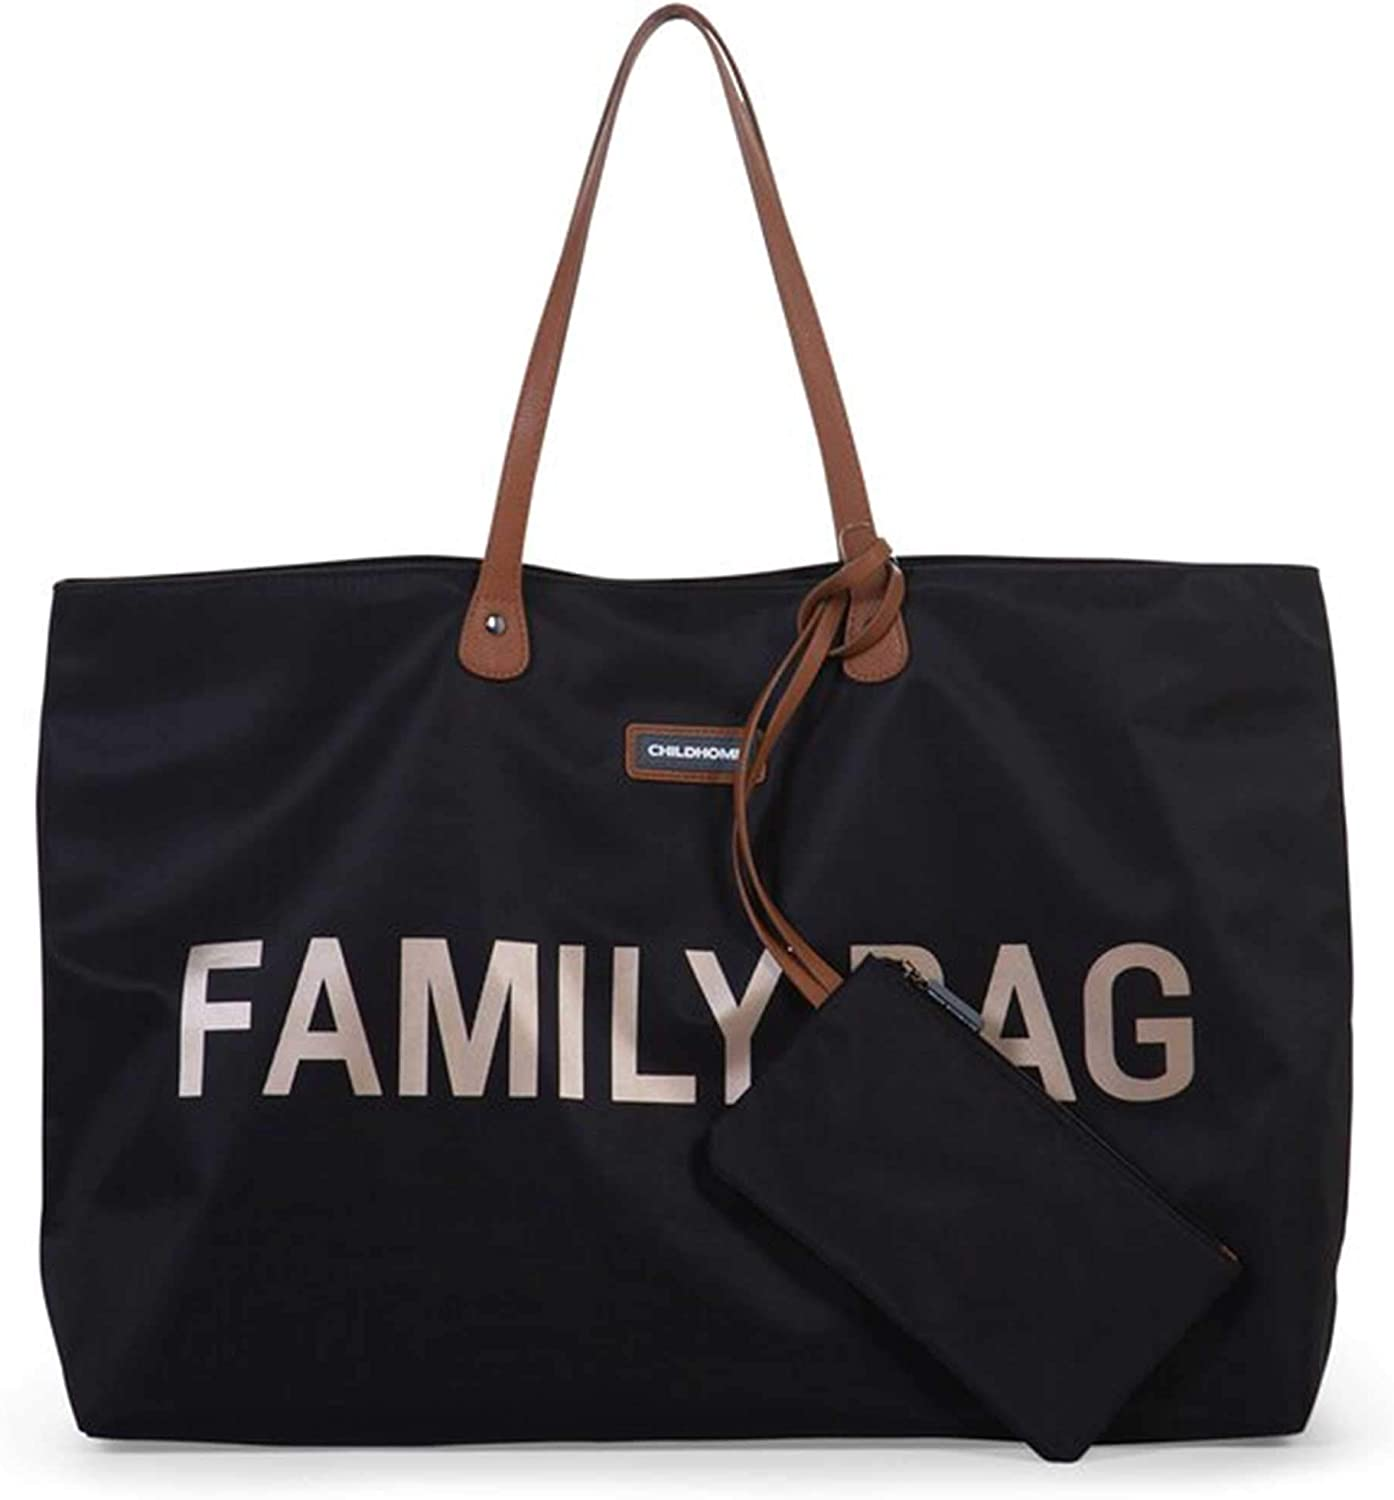 Childhome Family Bag Unisex Bags